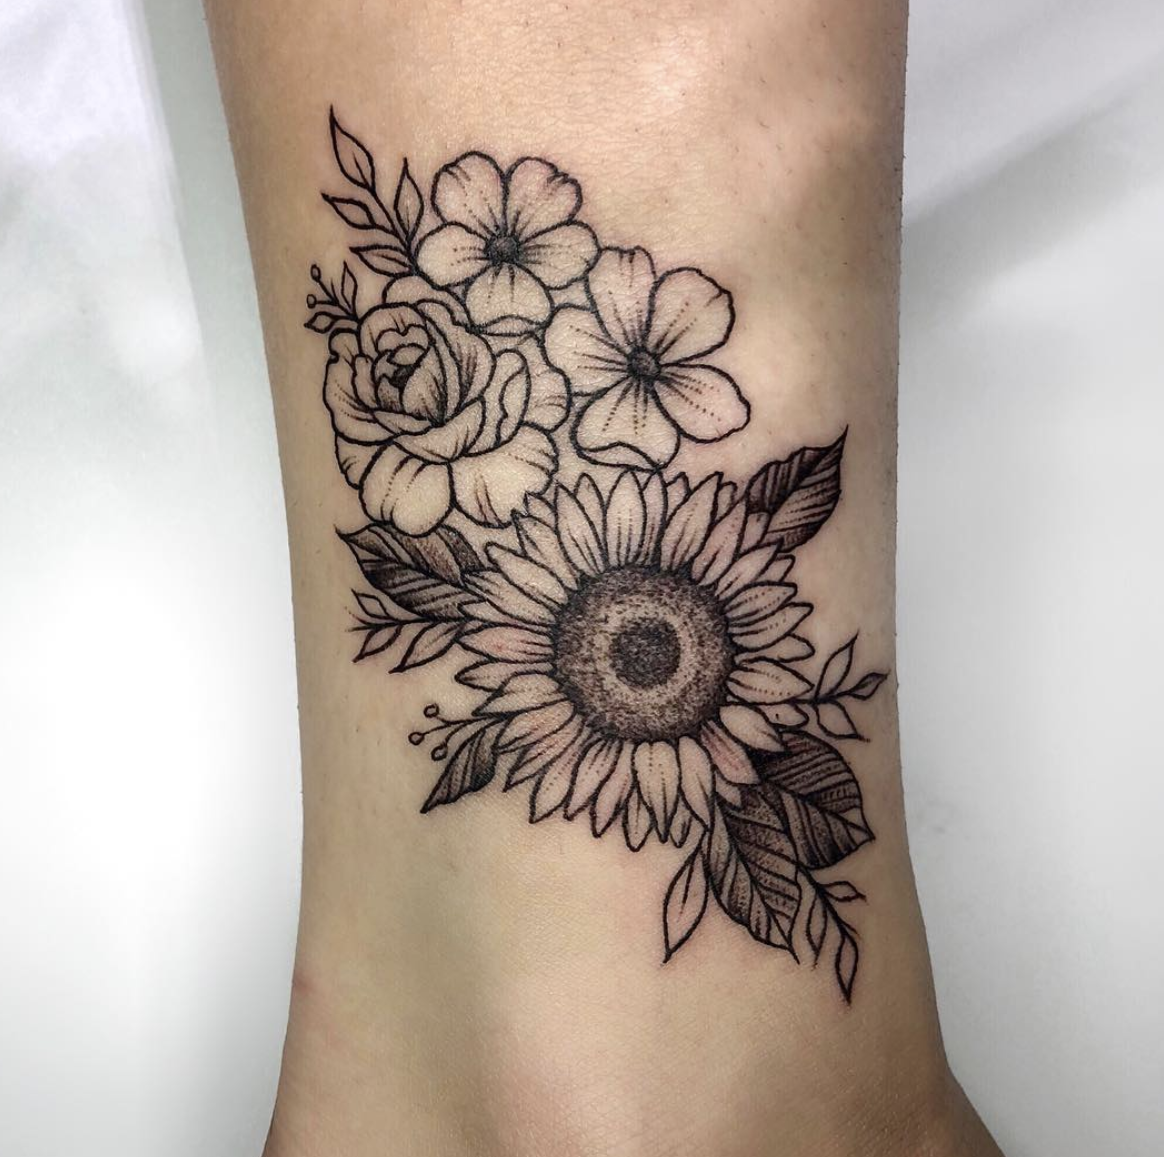 Photo of Thinking of getting inked? Here's our round-up of the best tattoo ideas from big and bold to small and delicate